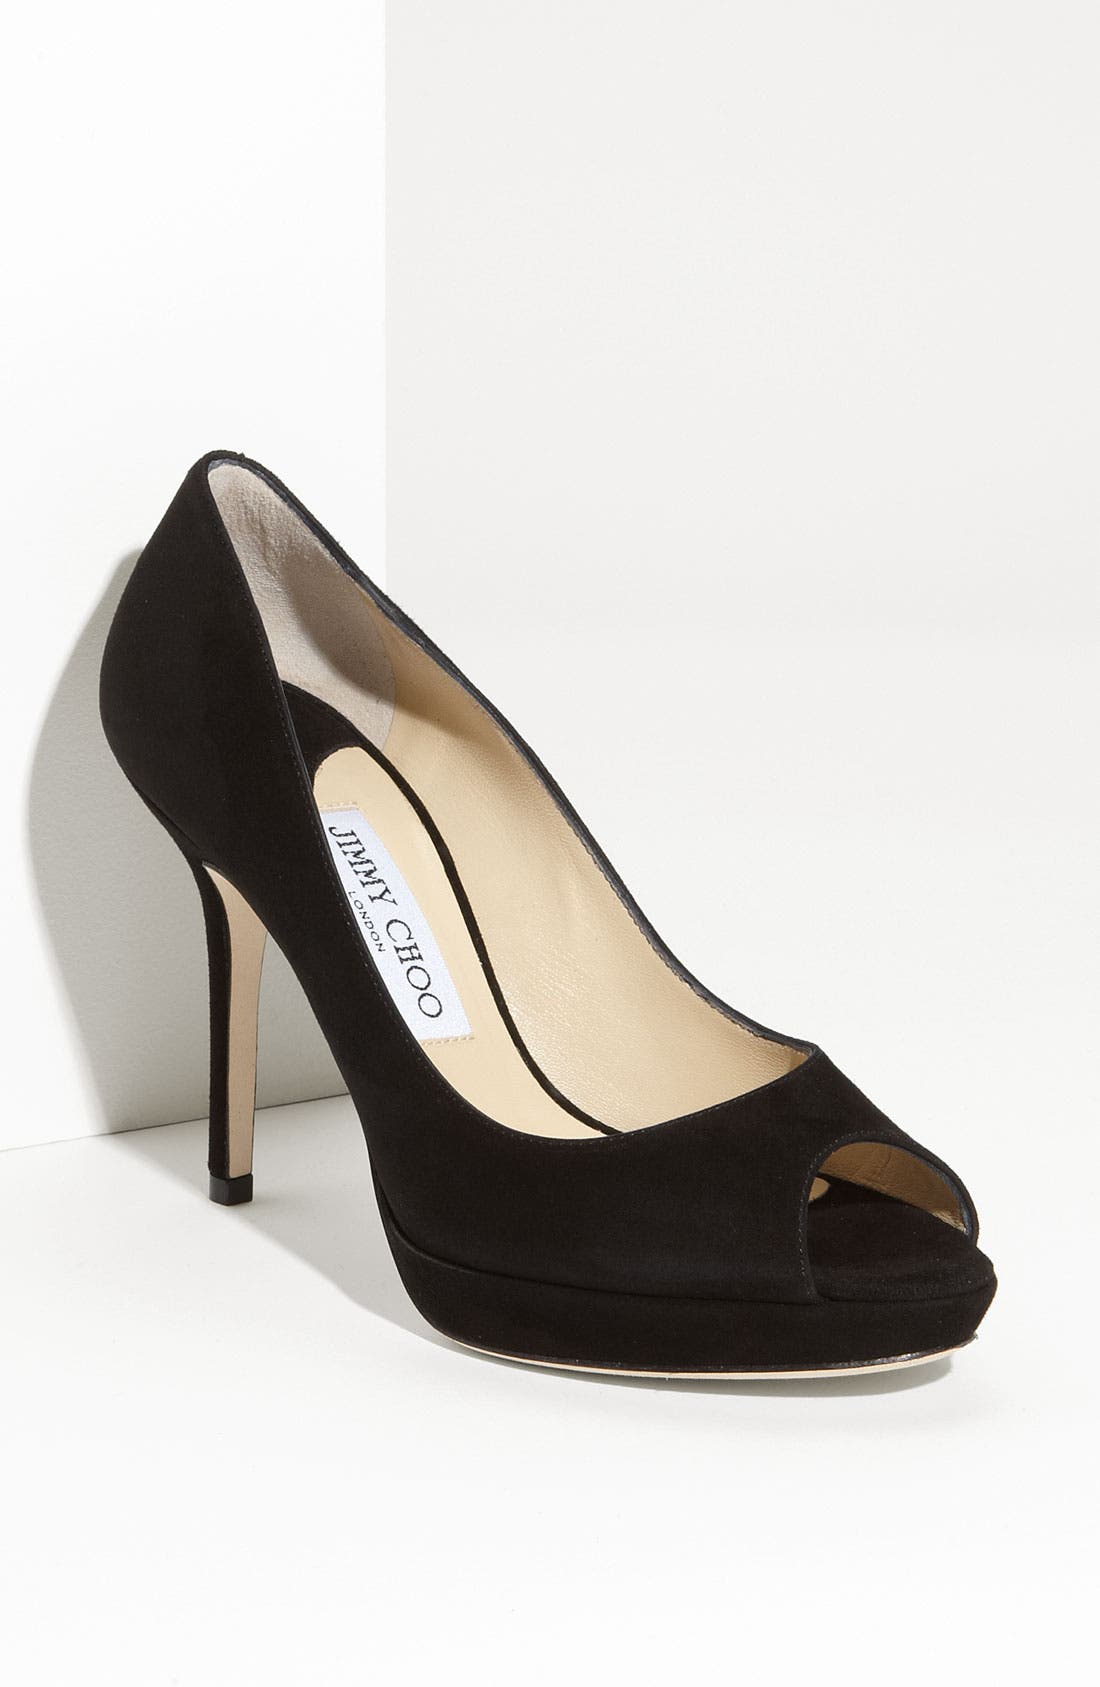 Alternate Image 1 Selected - Jimmy Choo 'Luna' Peep Toe Pump